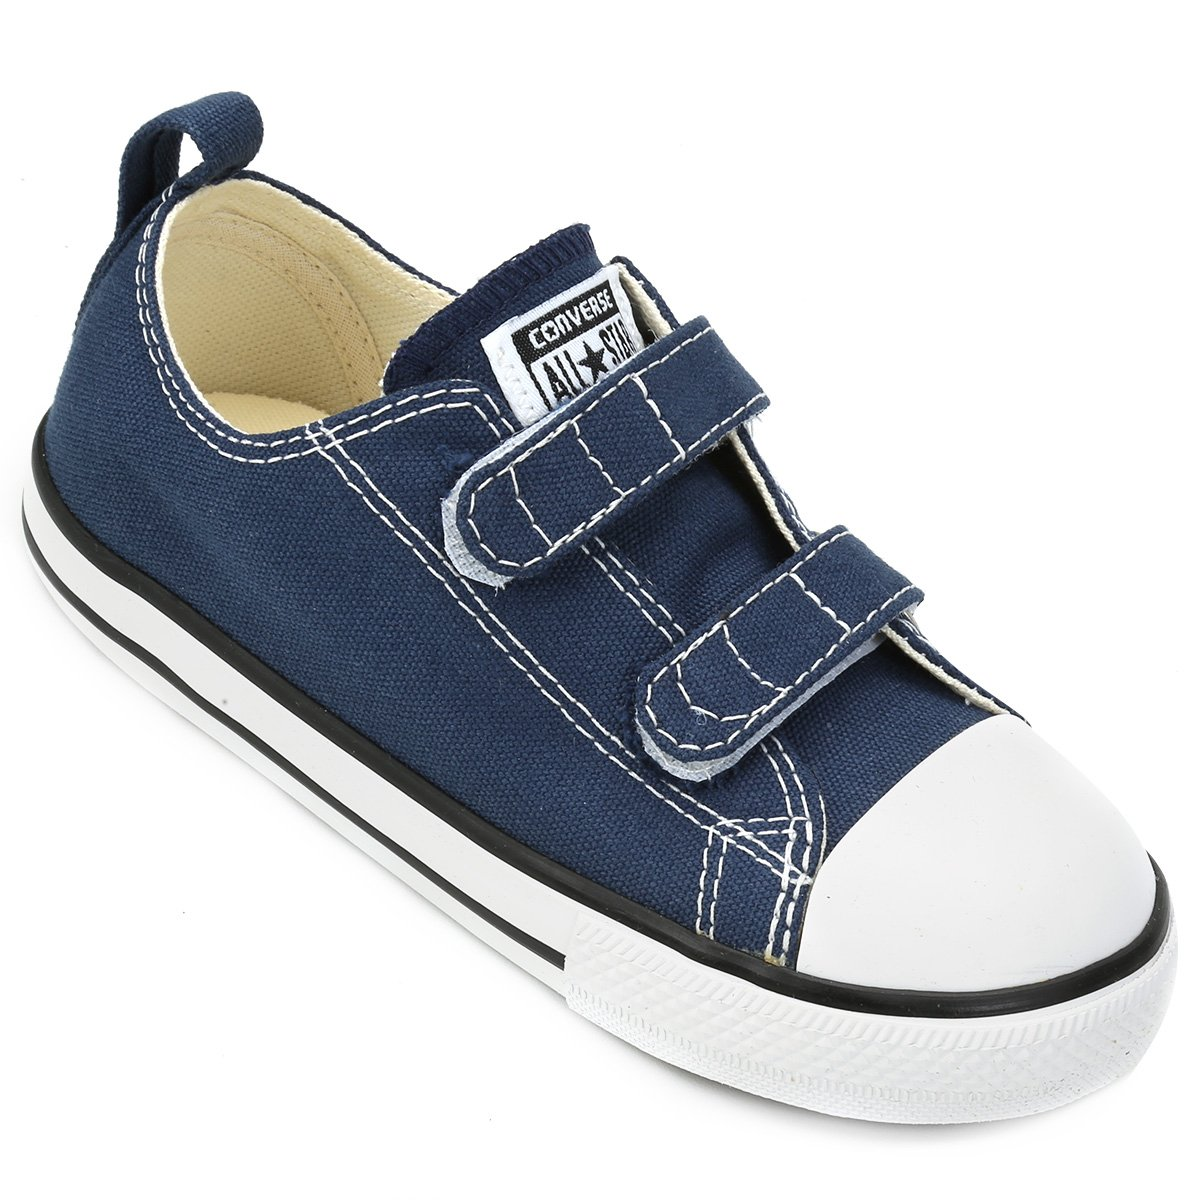 cdf9c42be Tênis Infantil Converse Chuck Taylor All Star 2 Velcros Baby. undefined